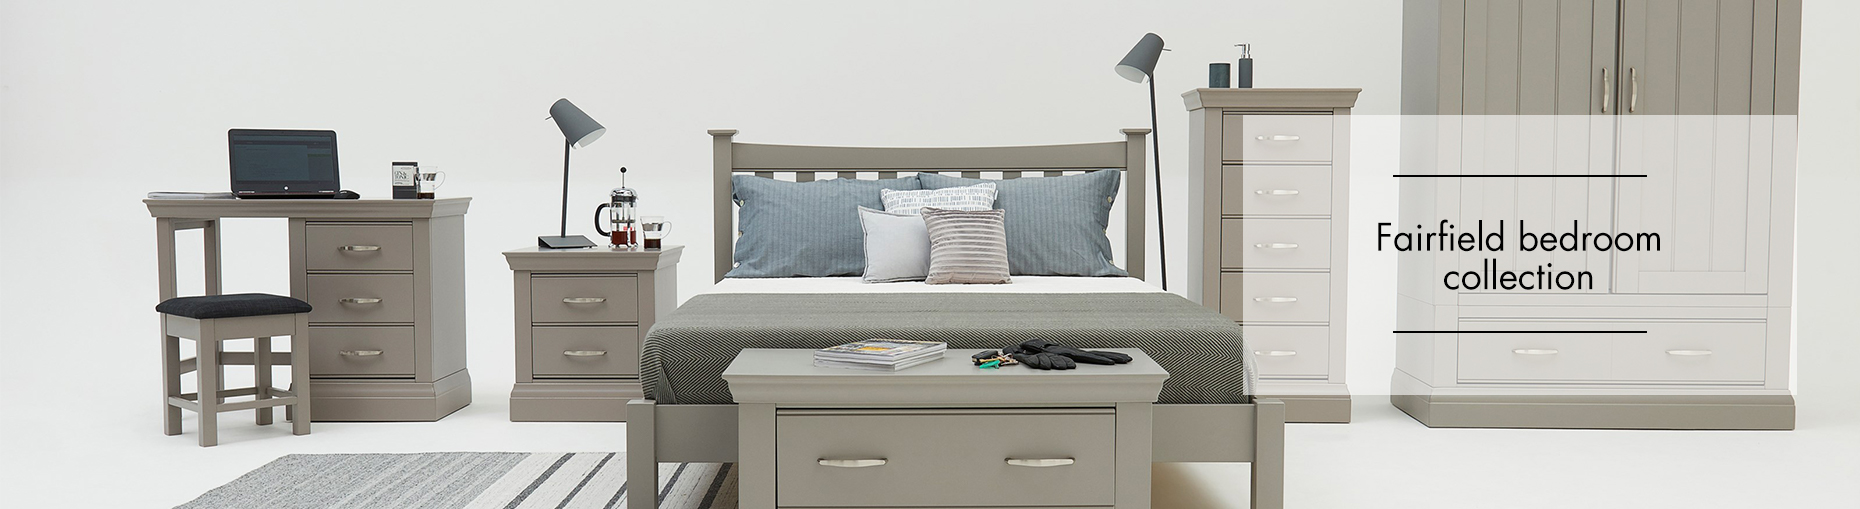 Fairfield painted grey bedroom collection at Forrest Furnishing